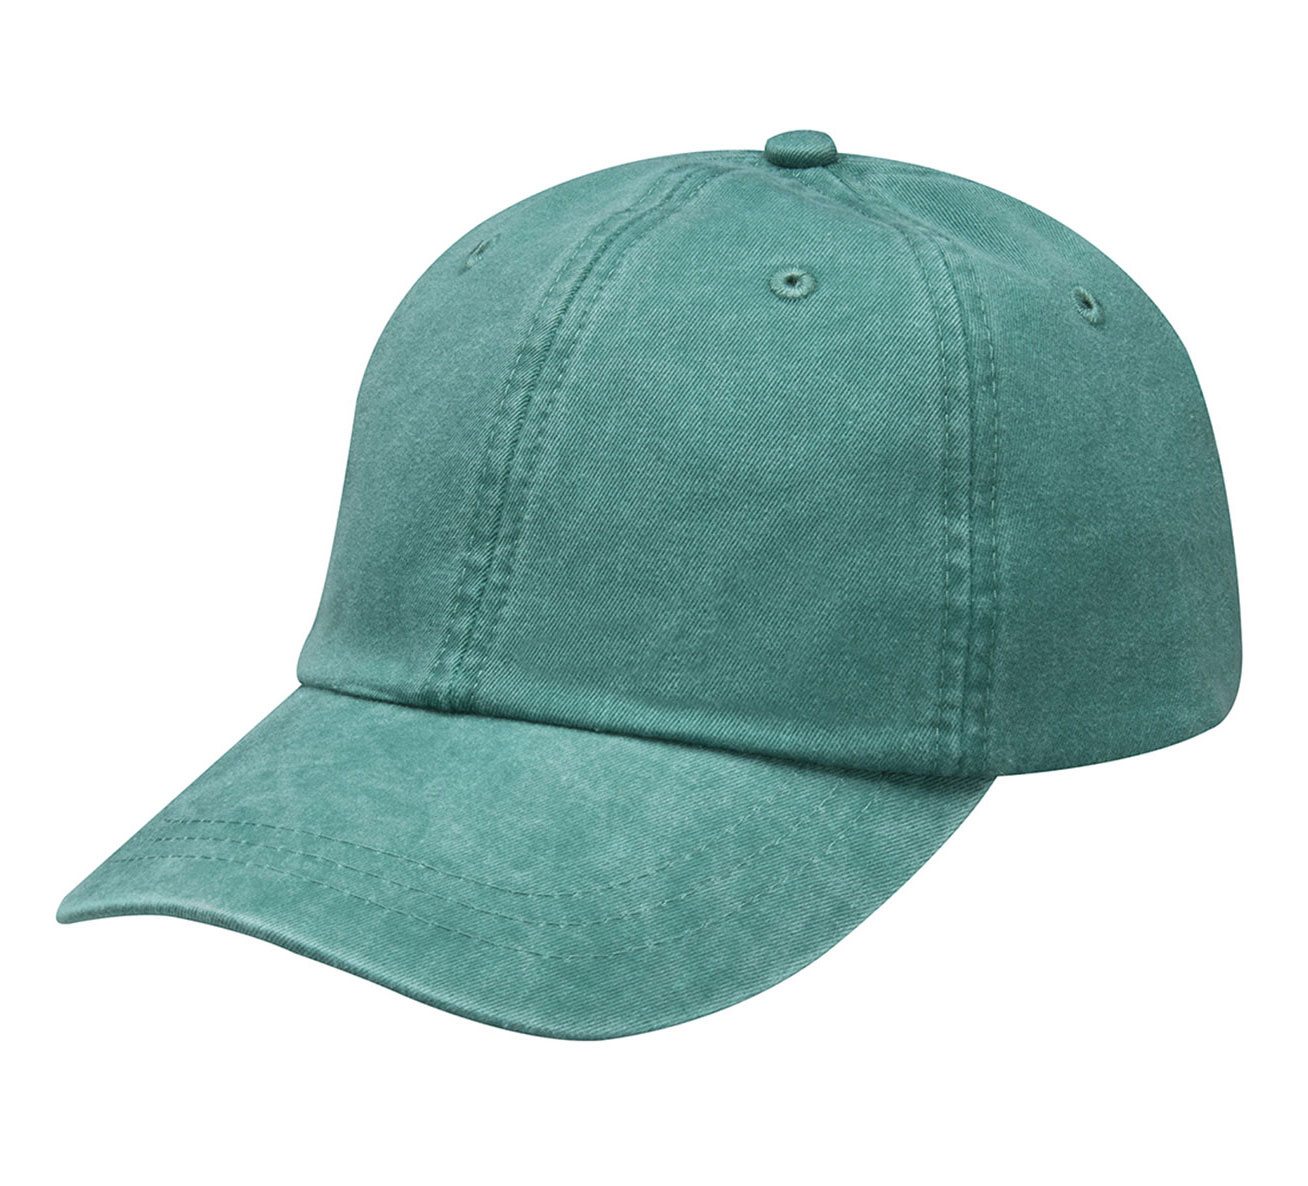 7619968a74f Design Adams Washed Pigment-Dyed Cap